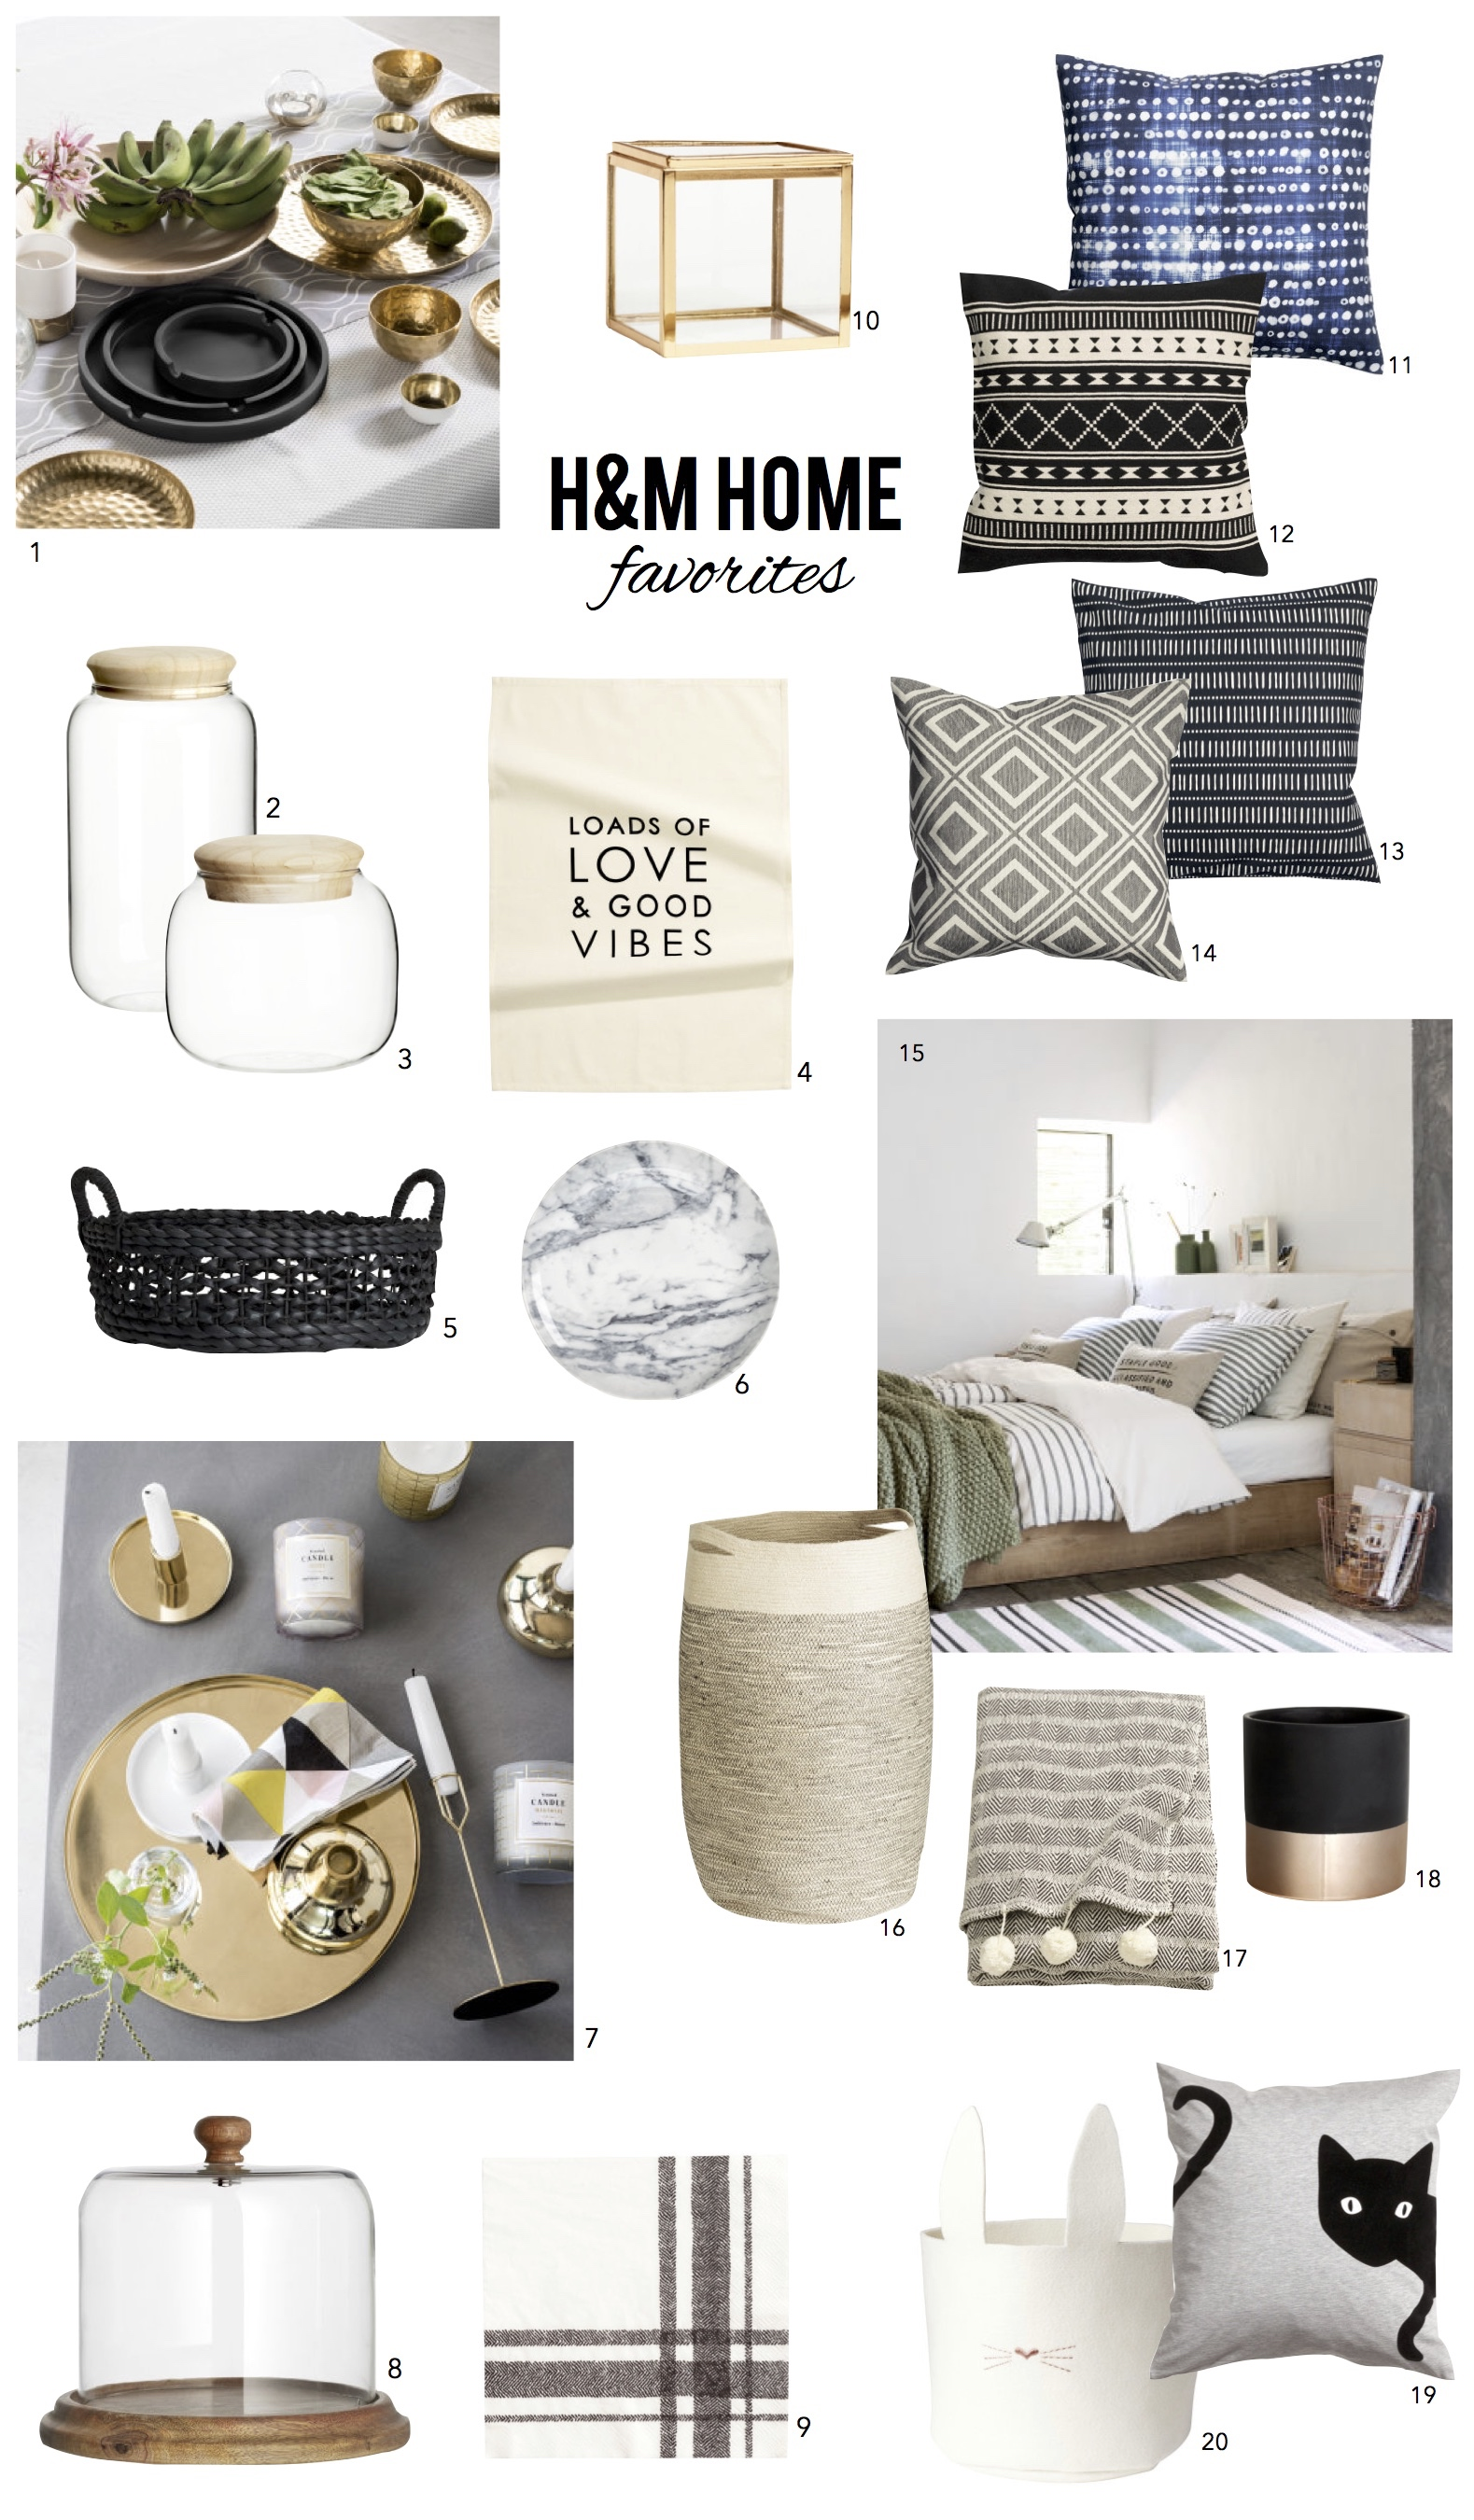 M Home Design Group Part - 32: Top 20 Hu0026M Home Favorites   Summer 2015   Whitestone Style   Whitestone Design  Group  